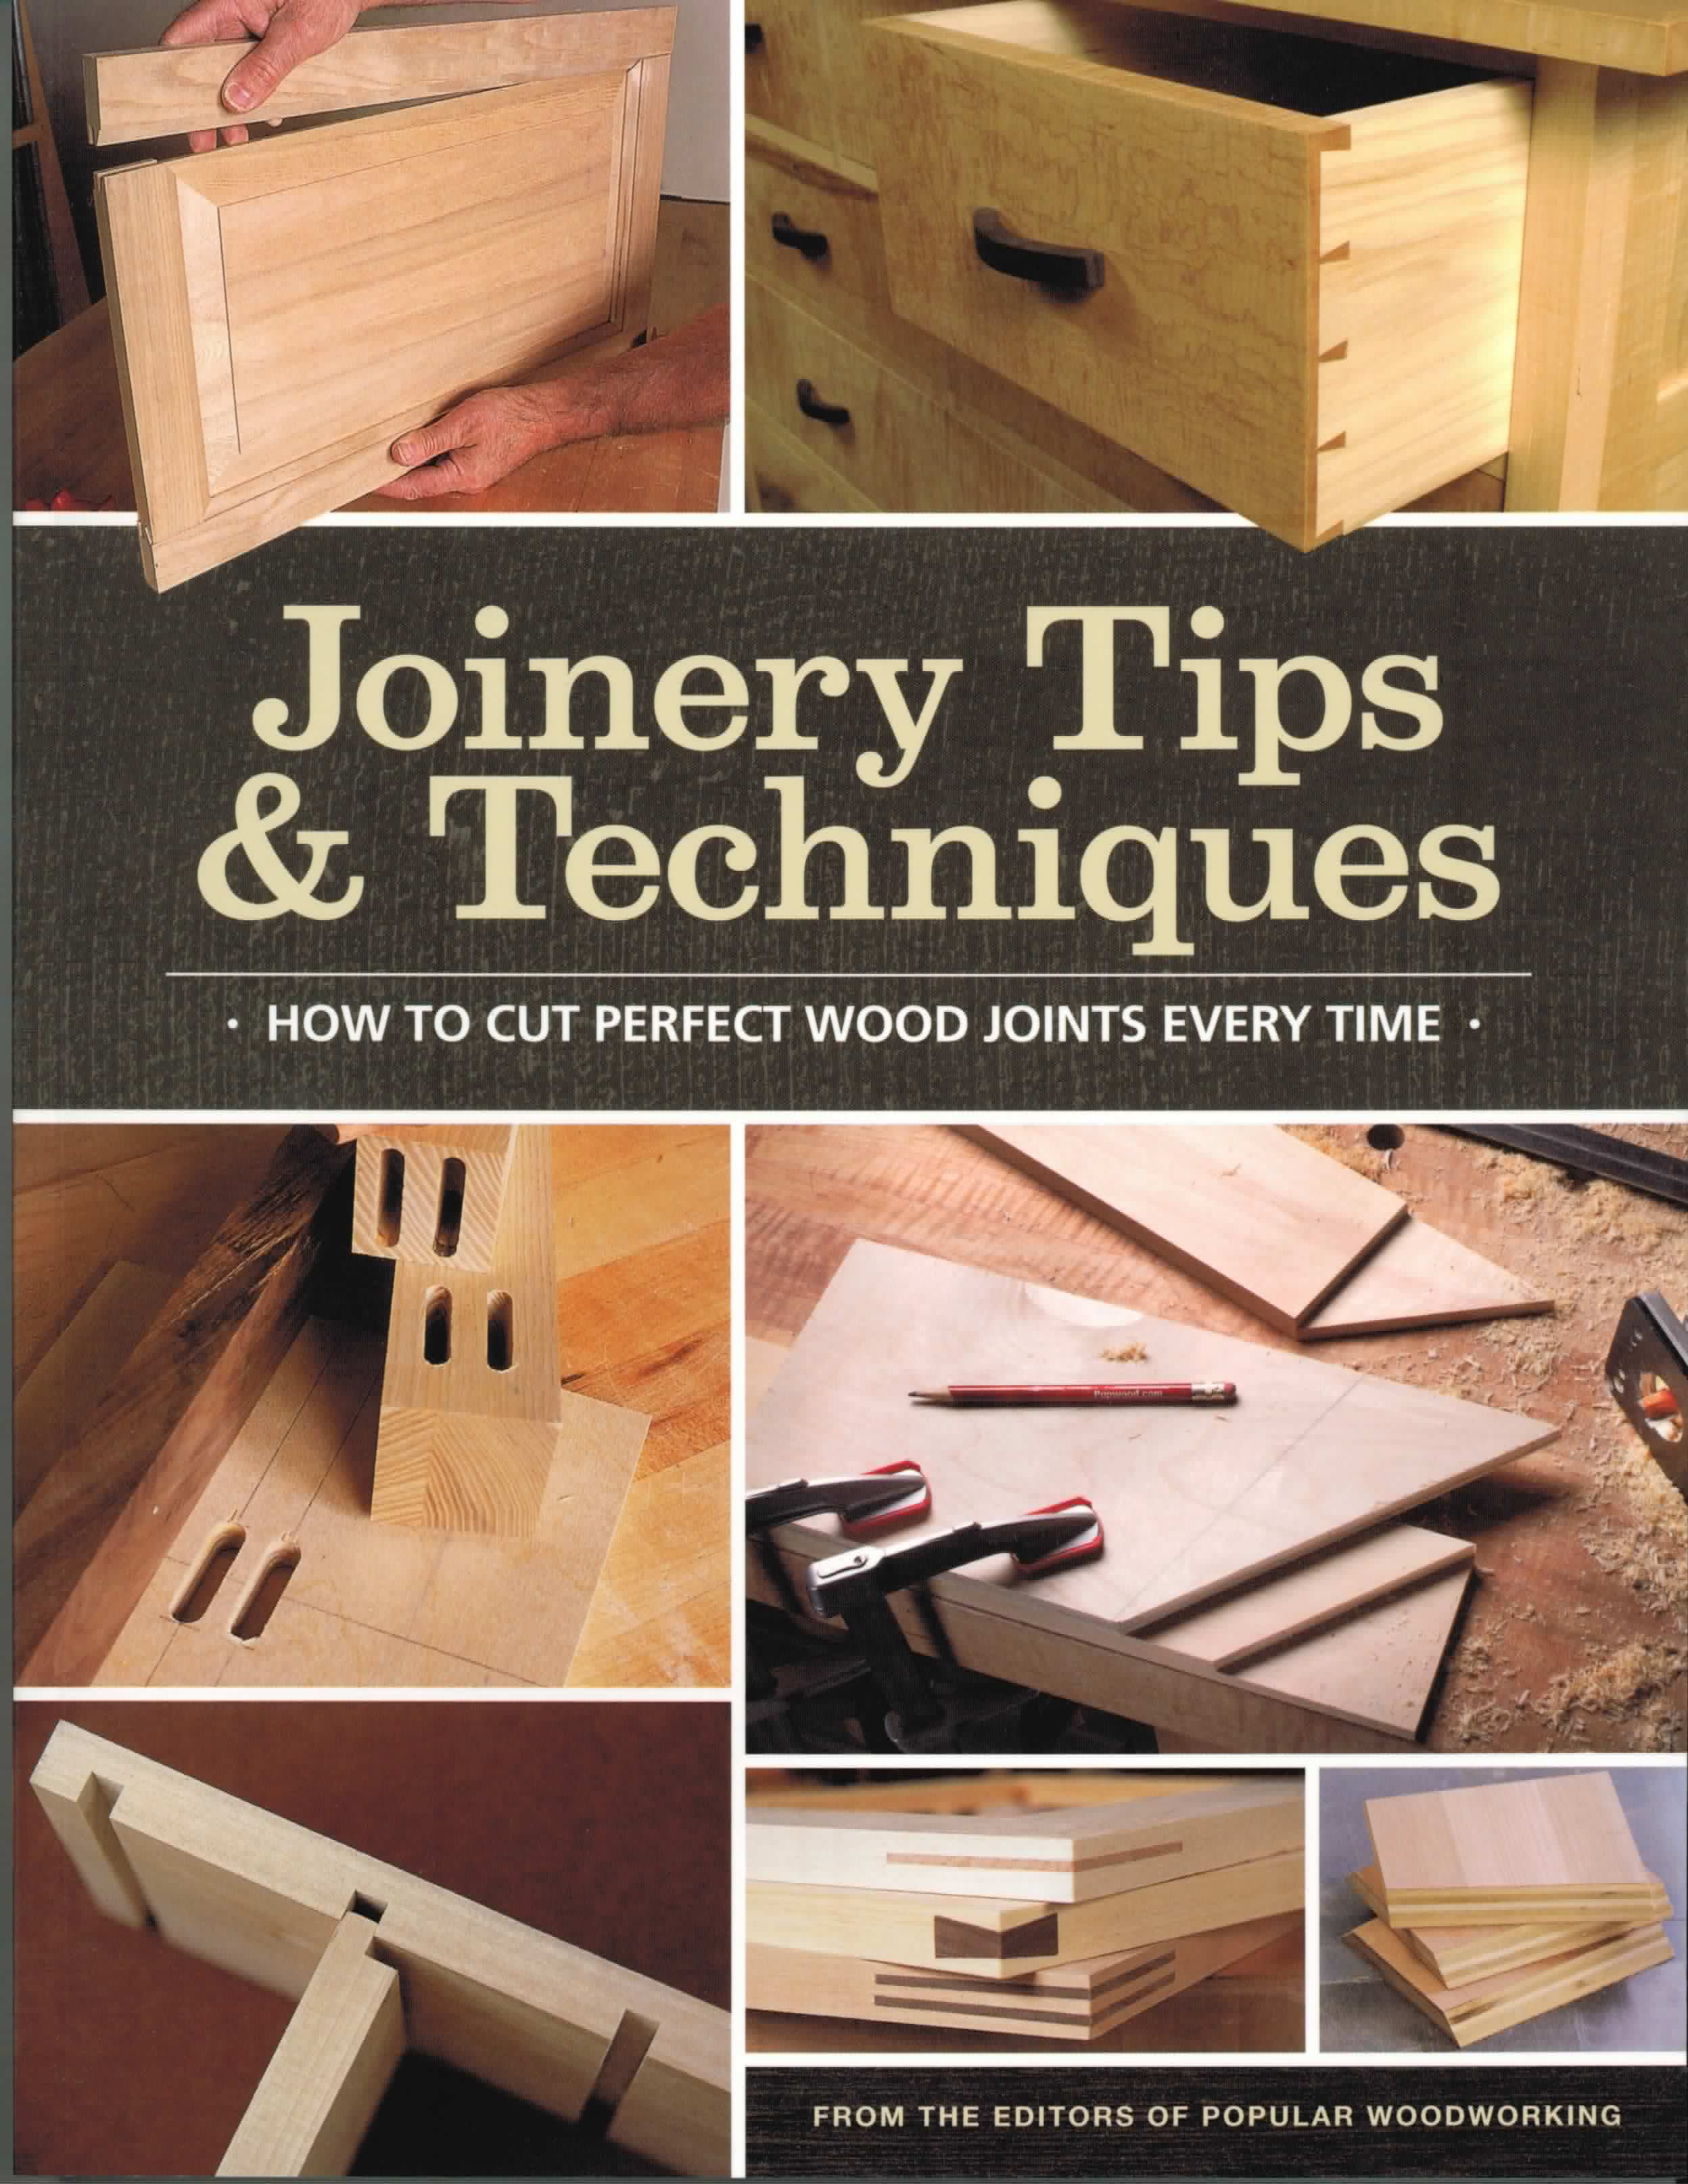 Joinery Tips & Techniques: The Woodworker's Library - woodworking books, projects, plans and videos